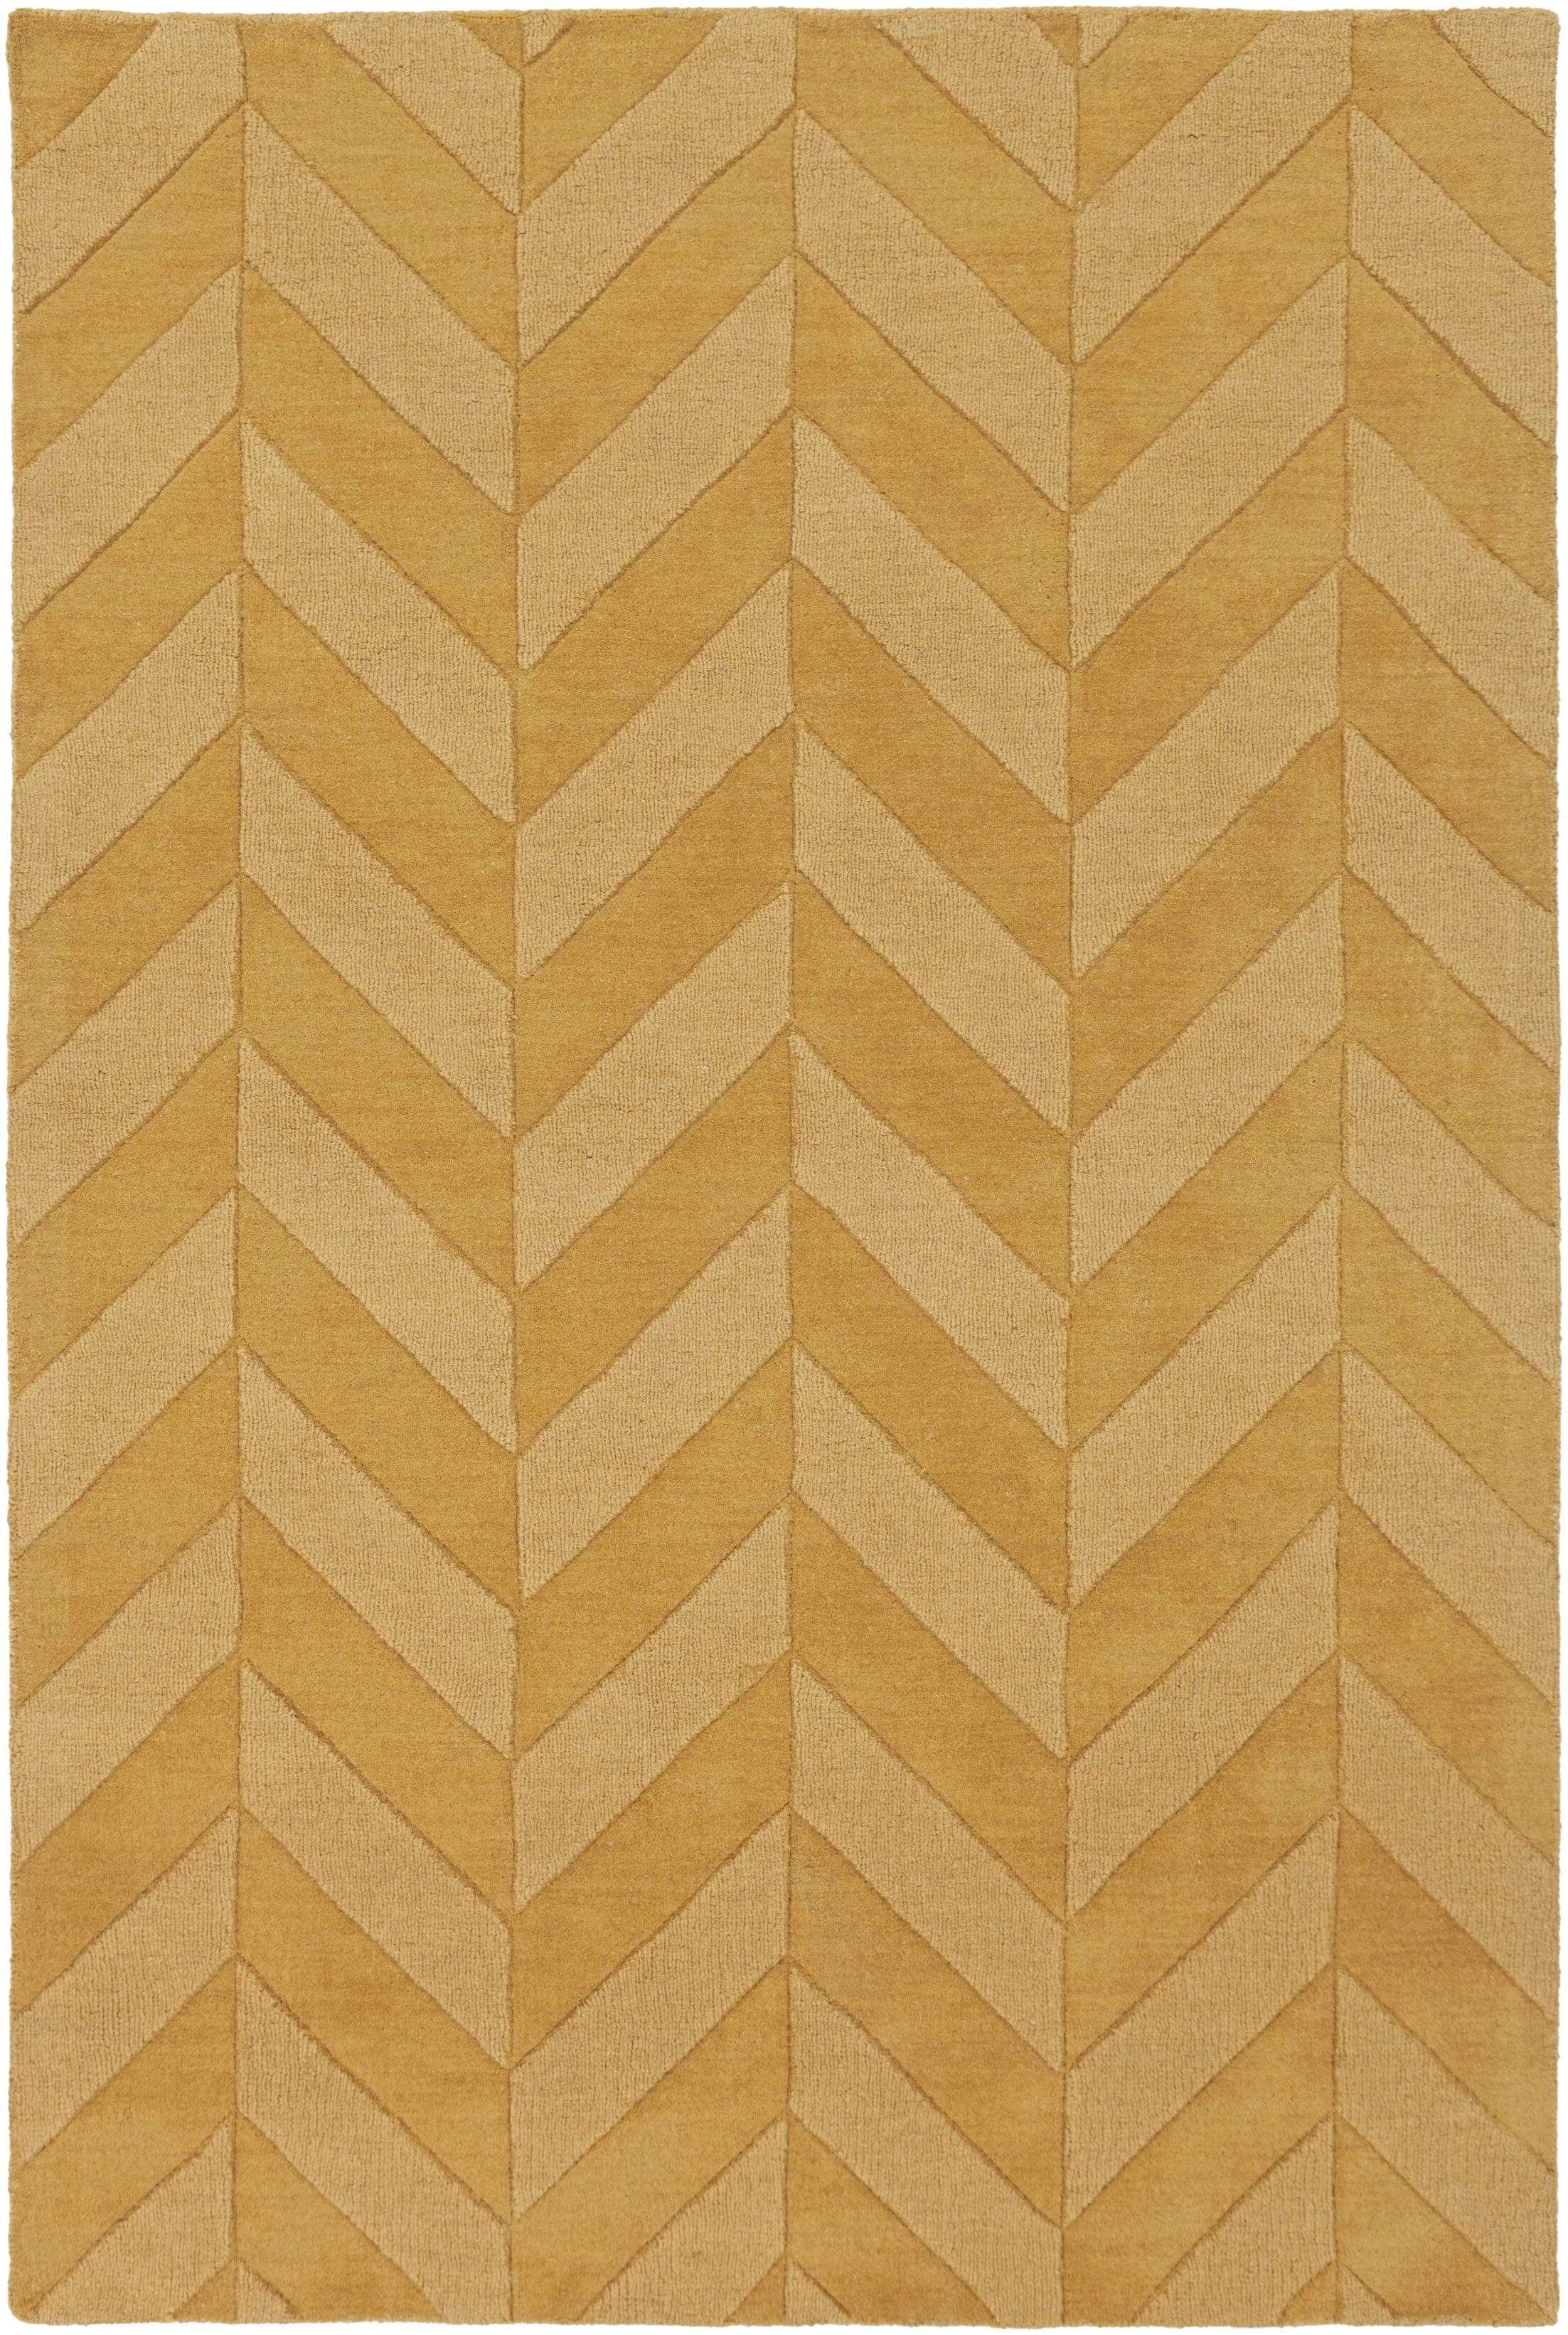 Sunburst Yellow Chevron Carrie Area Rug Rug Size: Rectangle 3' x 5'